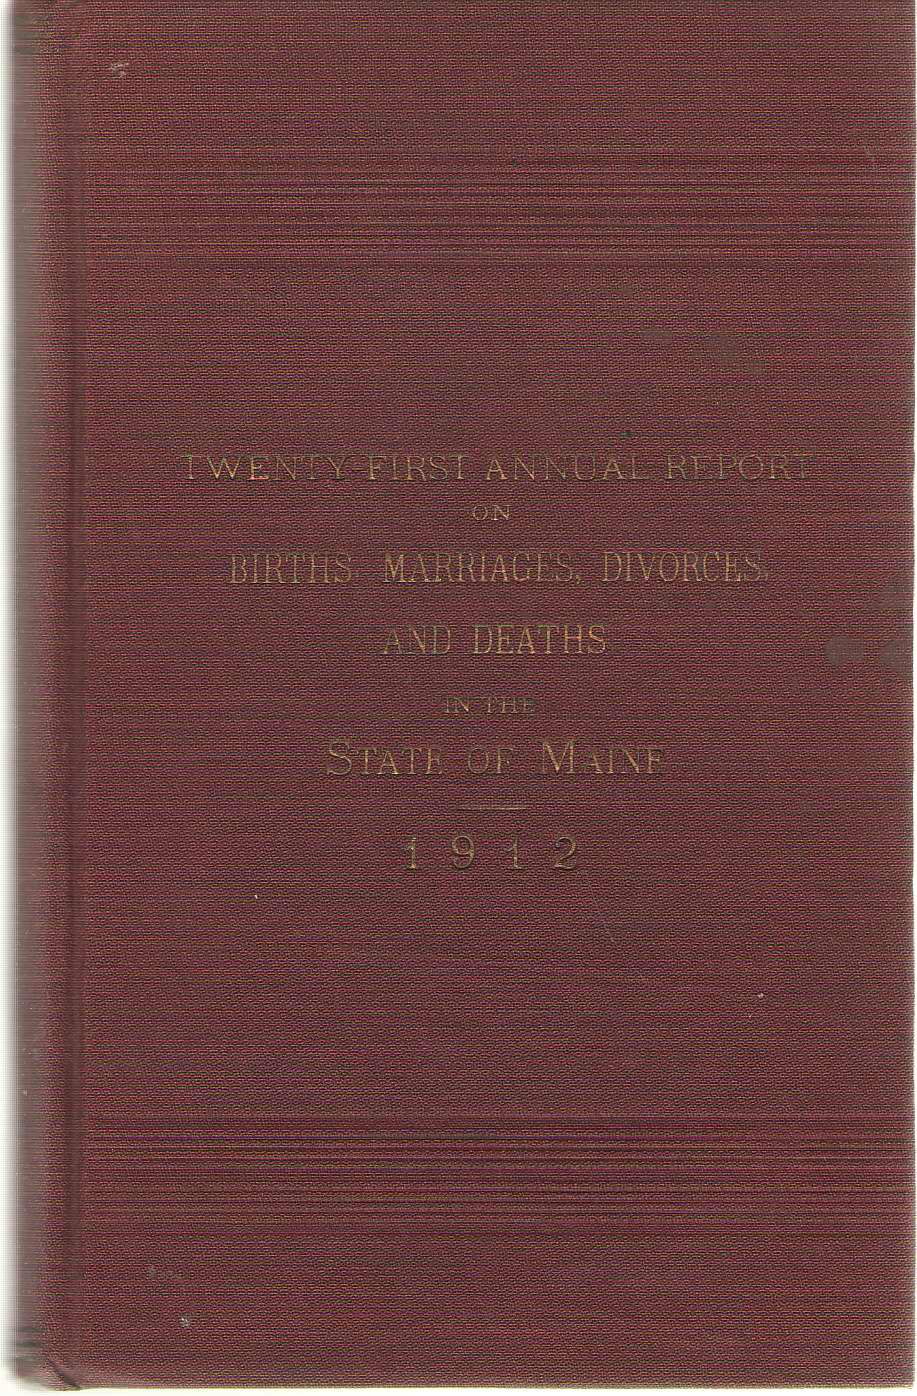 Twenty First Annual Report On Births, Marriages, Divorces, And Deaths, In The State Of Maine For The Year Ending December 31, 1912, No Author Noted